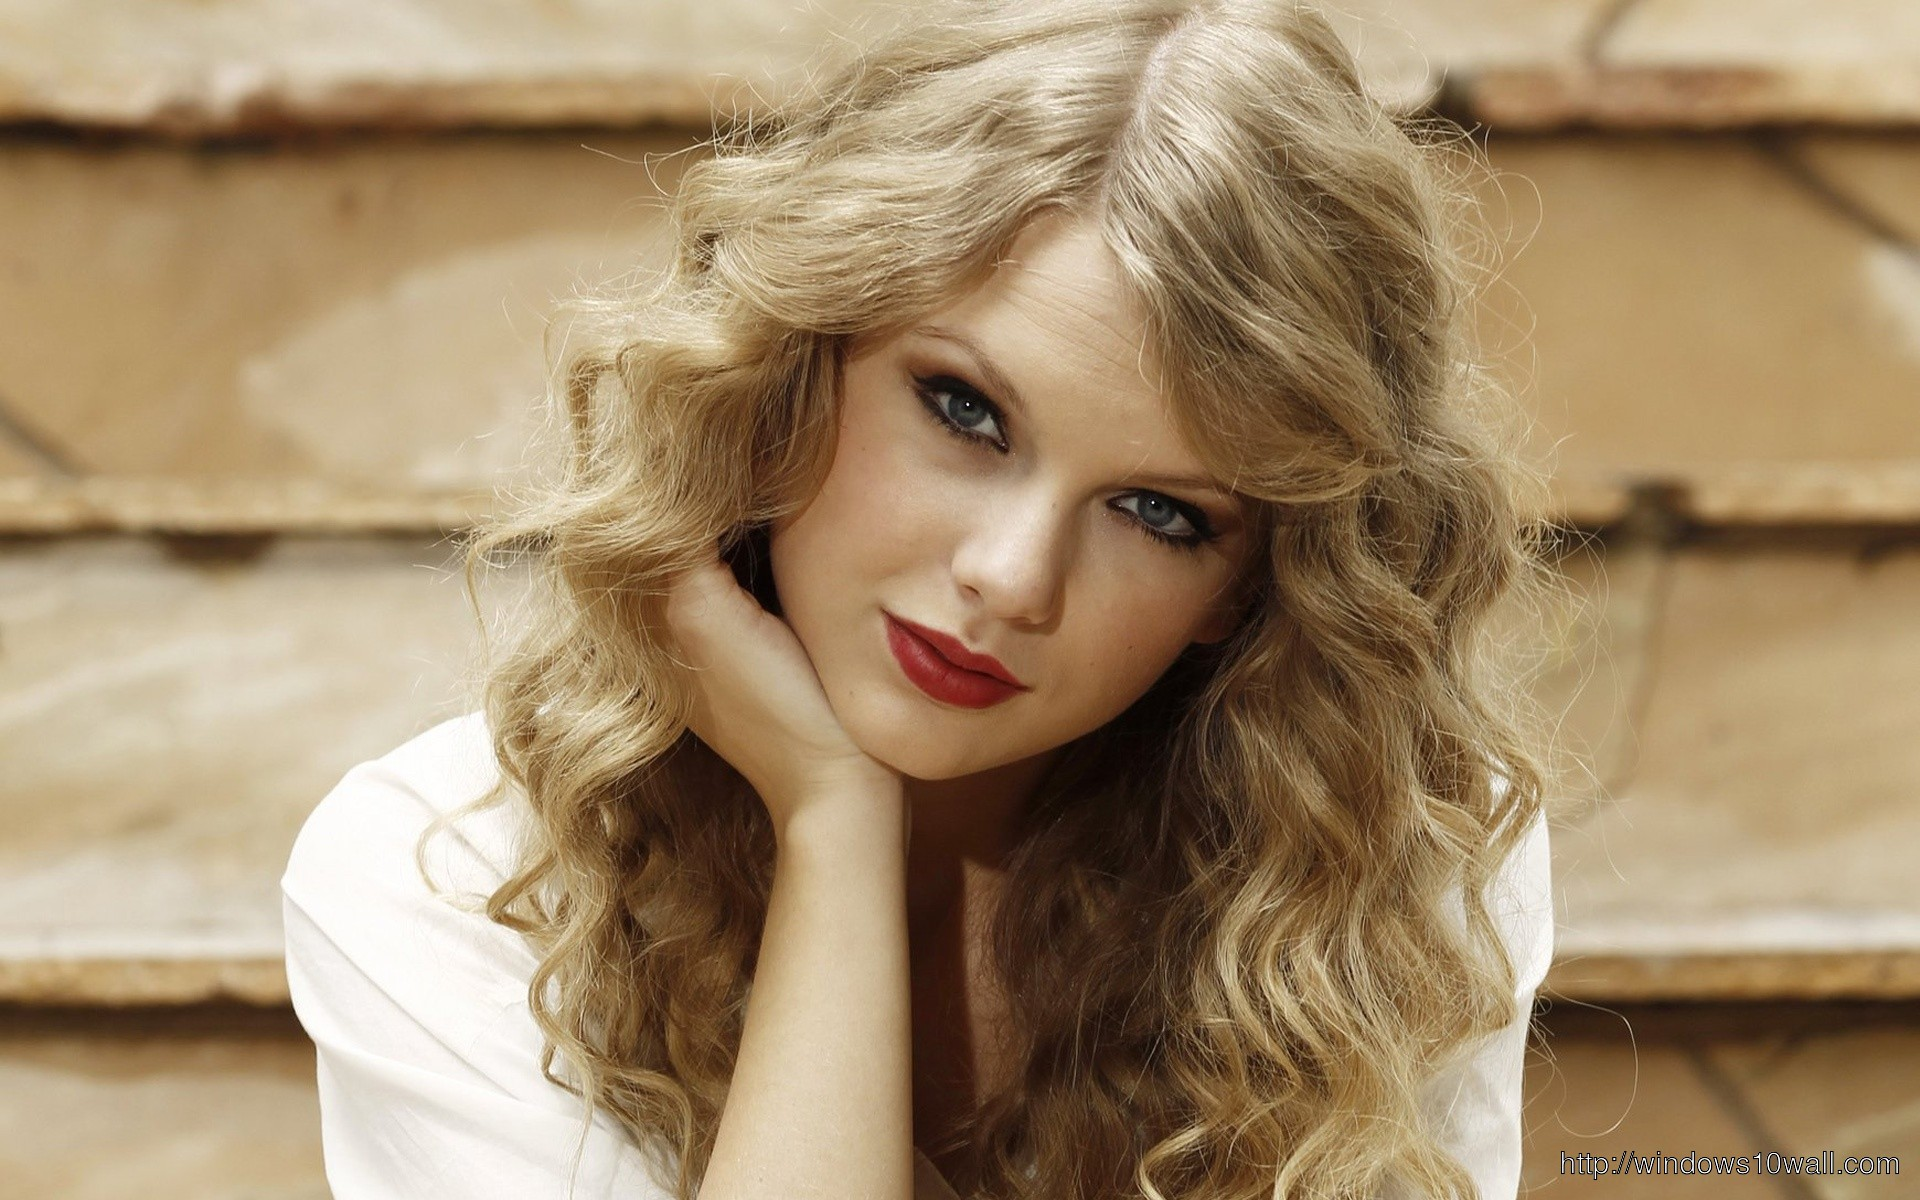 taylor swift best wallpaper - windows 10 wallpapers